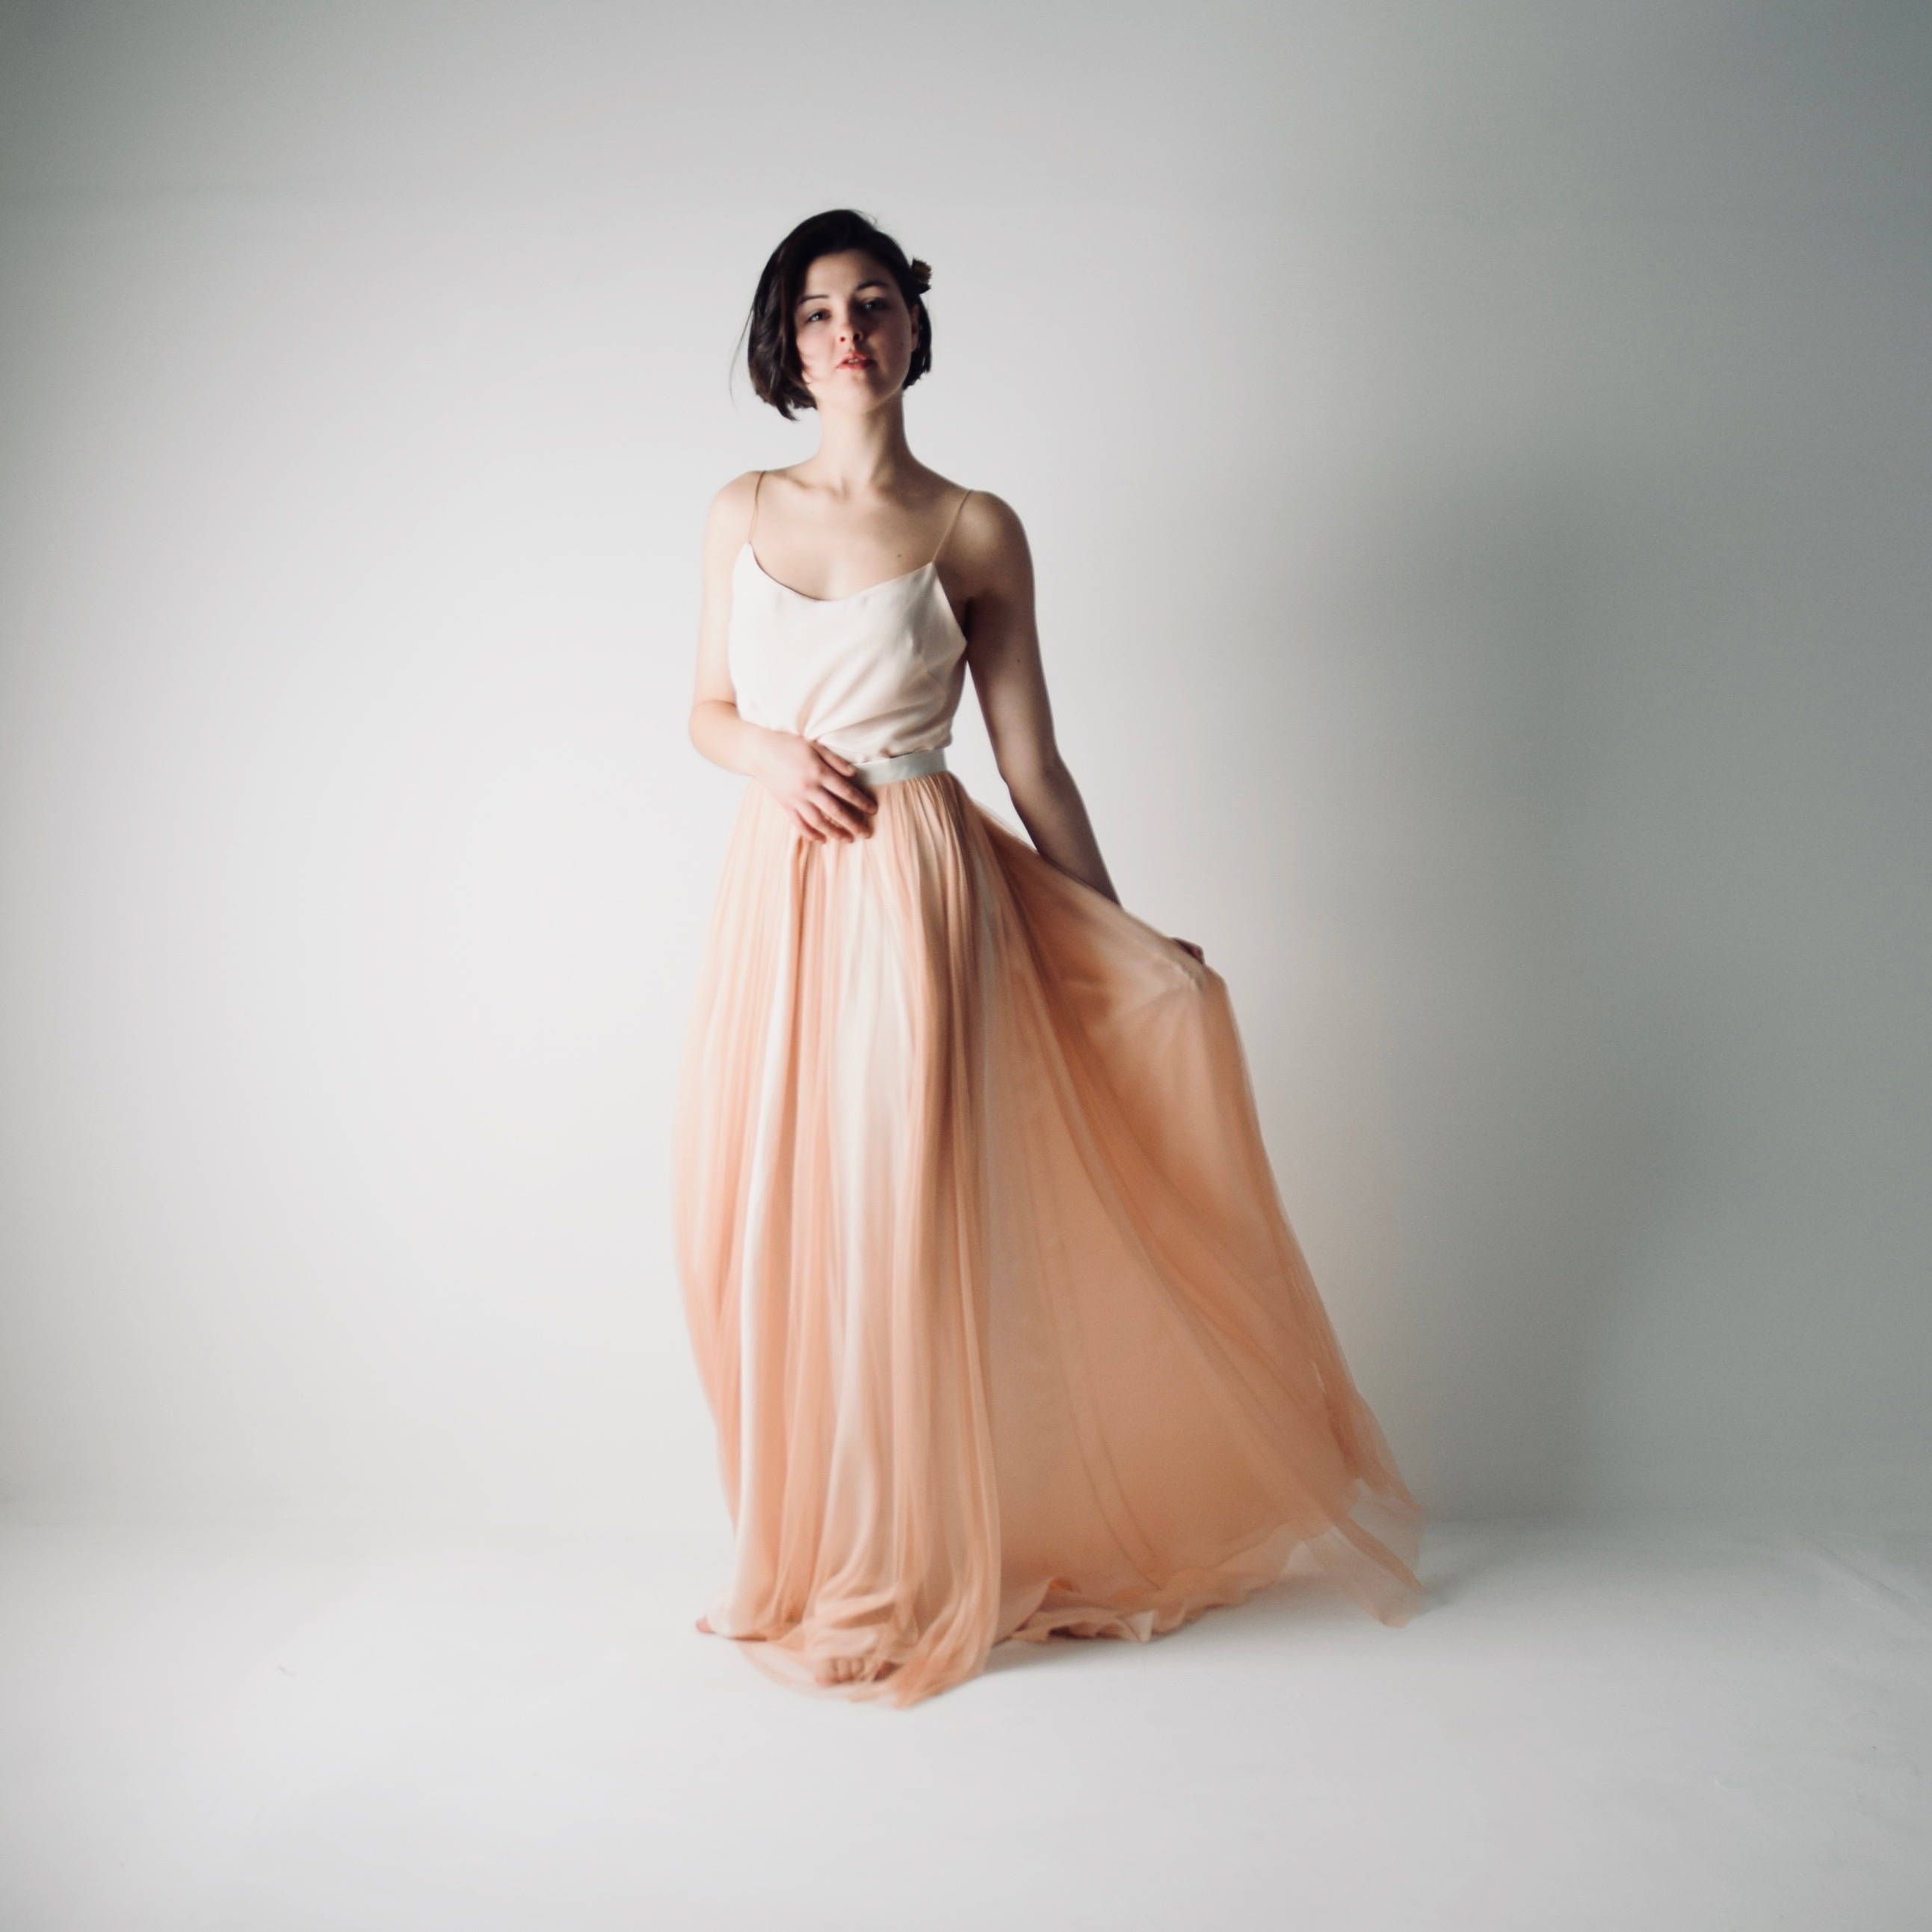 f4ccf66aa765 The Abelia Blush wedding dress separates, made of a tulle and silk skirt  and top. Relaxed but sophisticated. This wedding dress outfit features two  pieces, ...